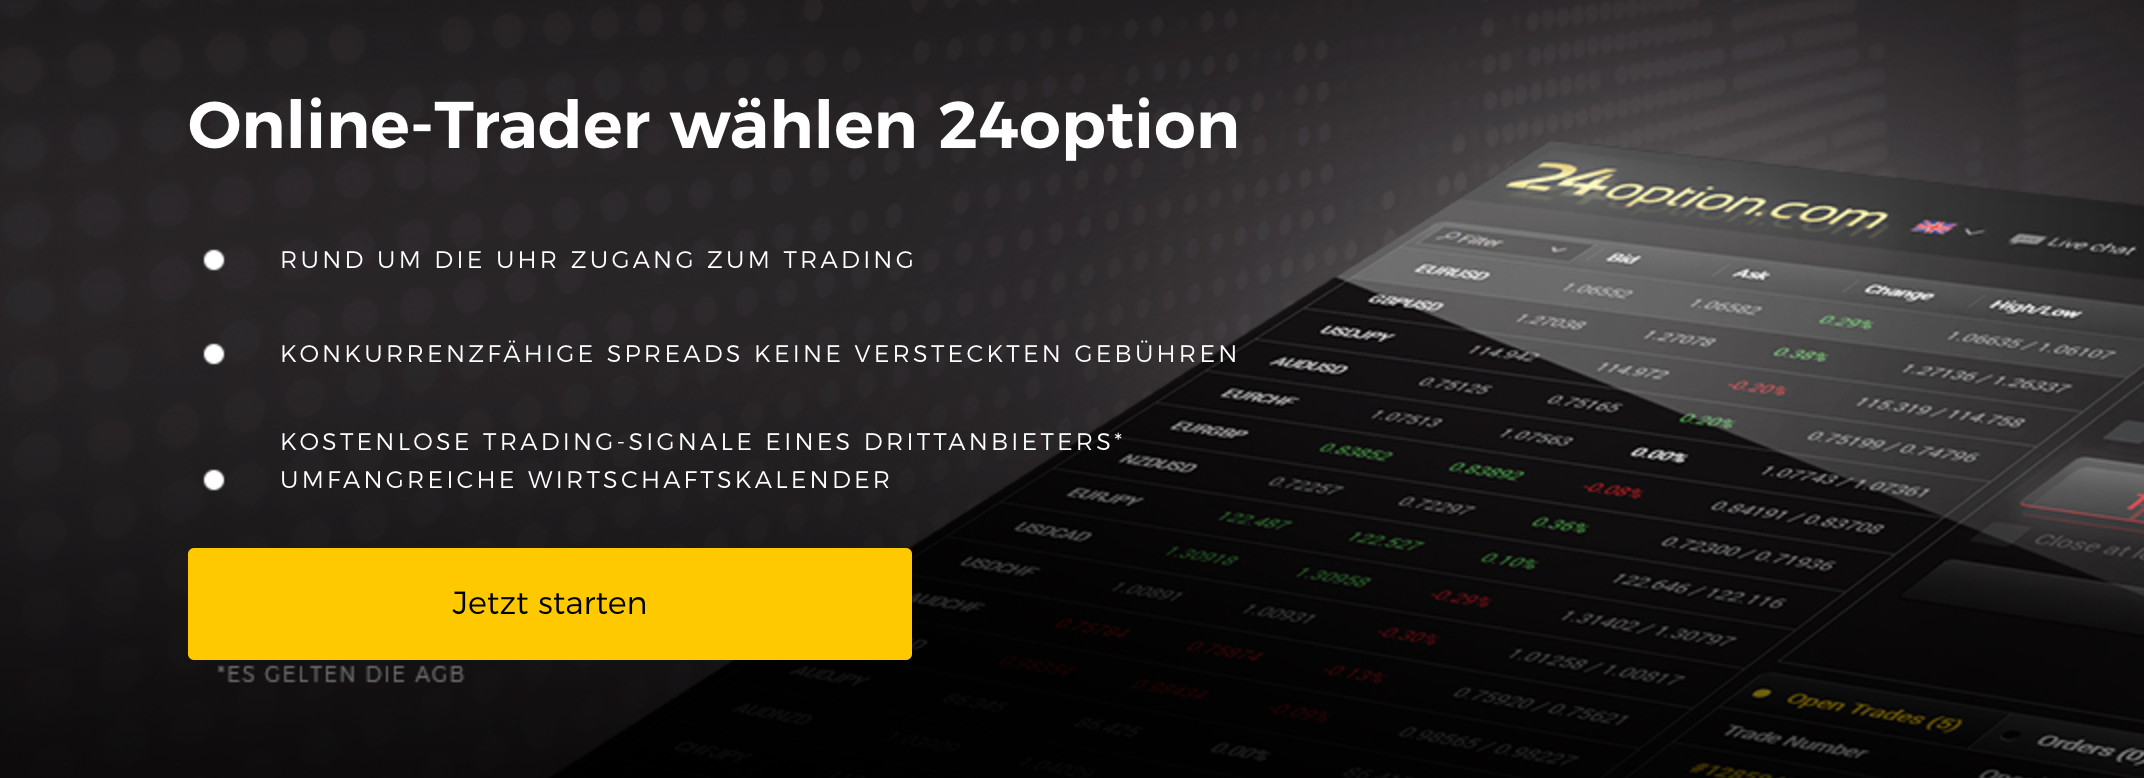 Die 24option Website